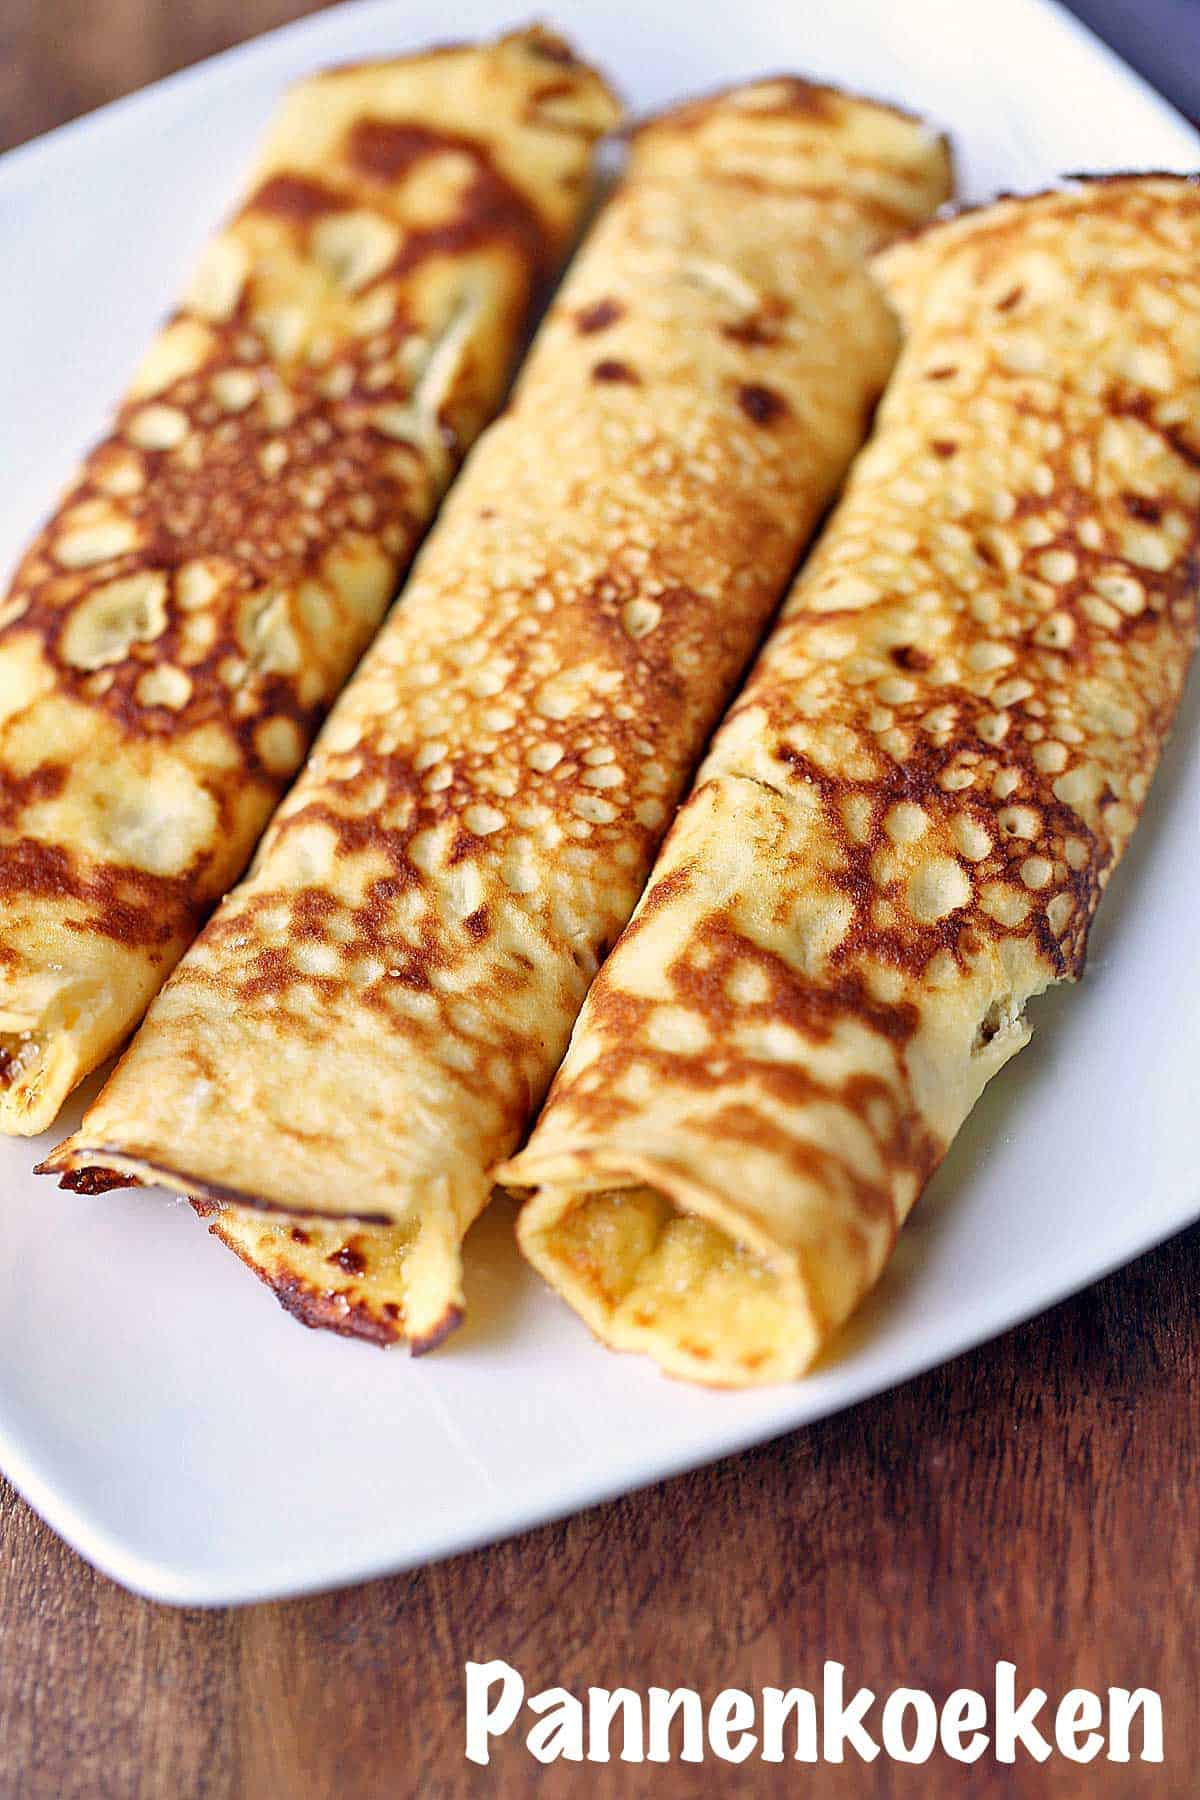 Three pannenkoeken rolled up and served on a white plate.